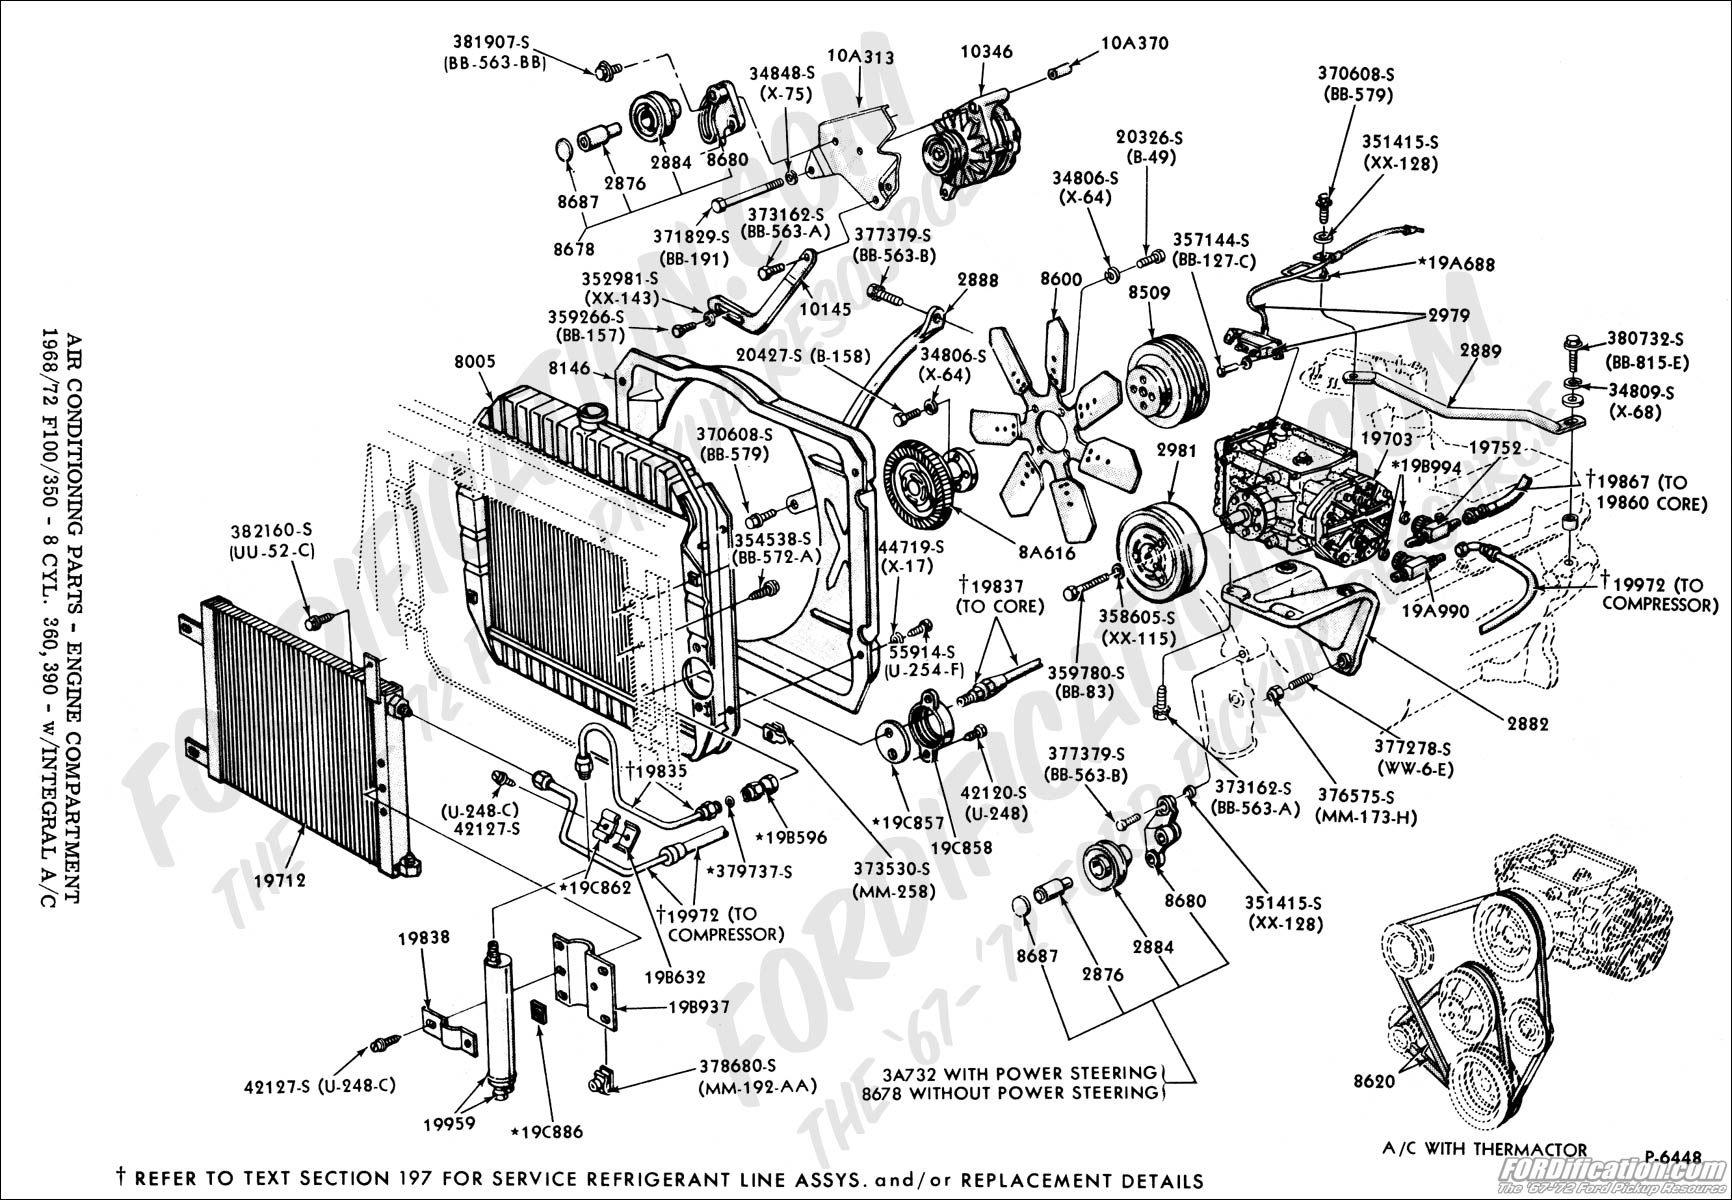 Ac Engcomp Integral on 1992 Mustang Wiring Diagram